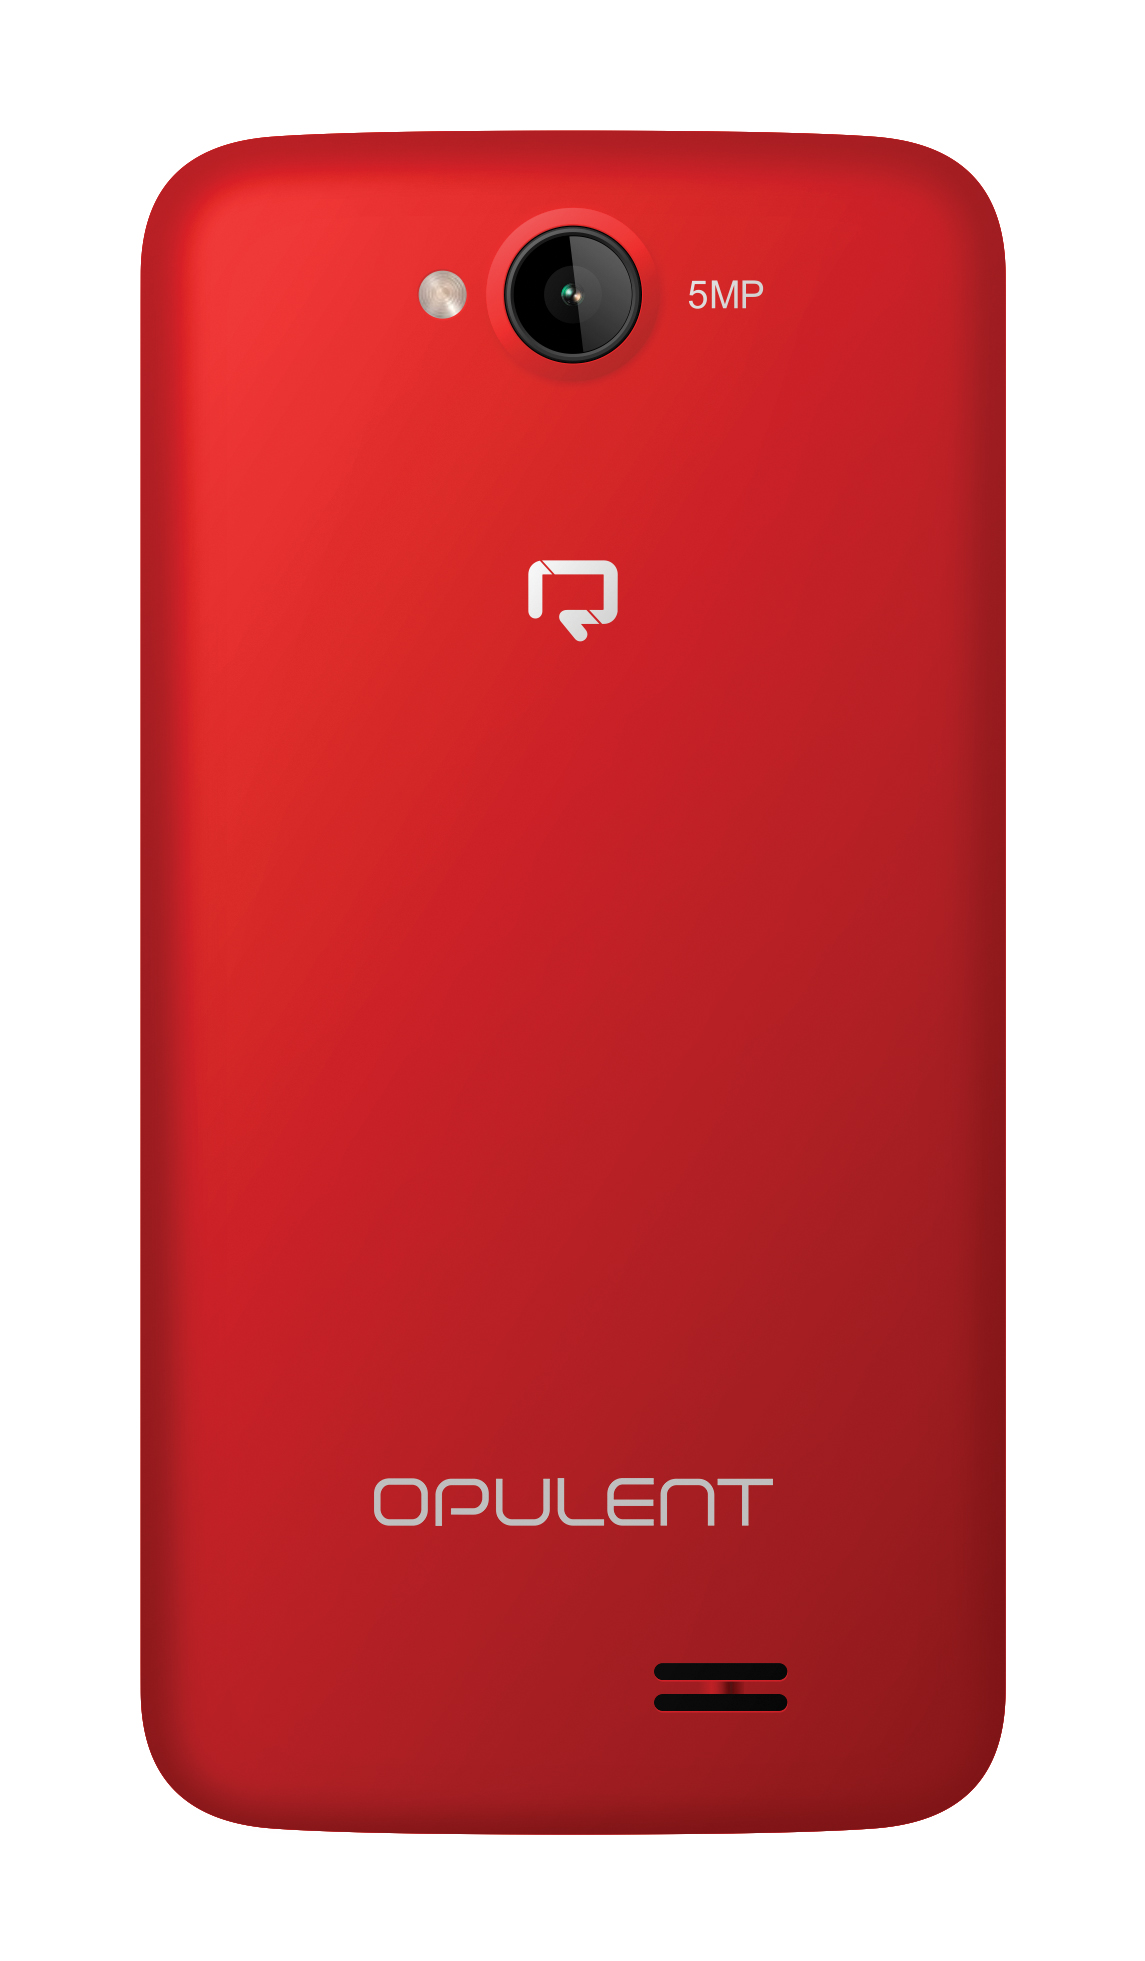 Reach Opulent with 1 GB RAM launched for Rs. 3599